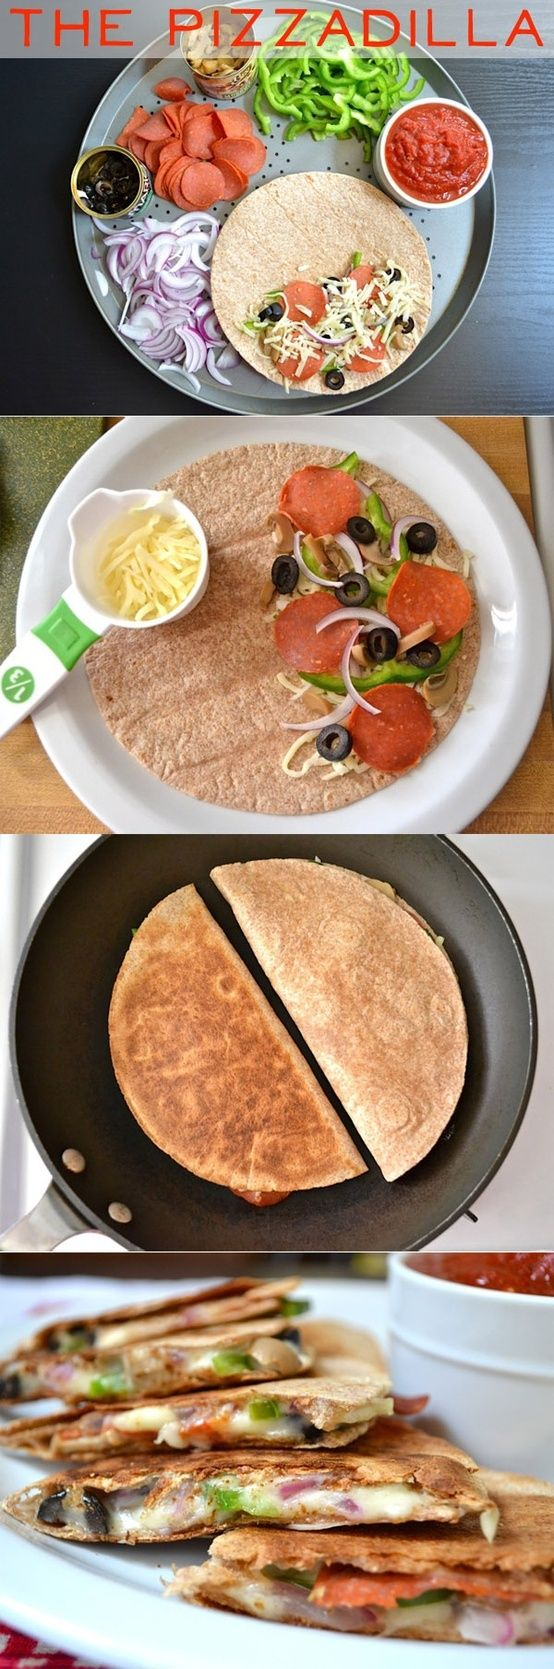 Pizzadillas - healthier pizza option. What a great quick dinner option